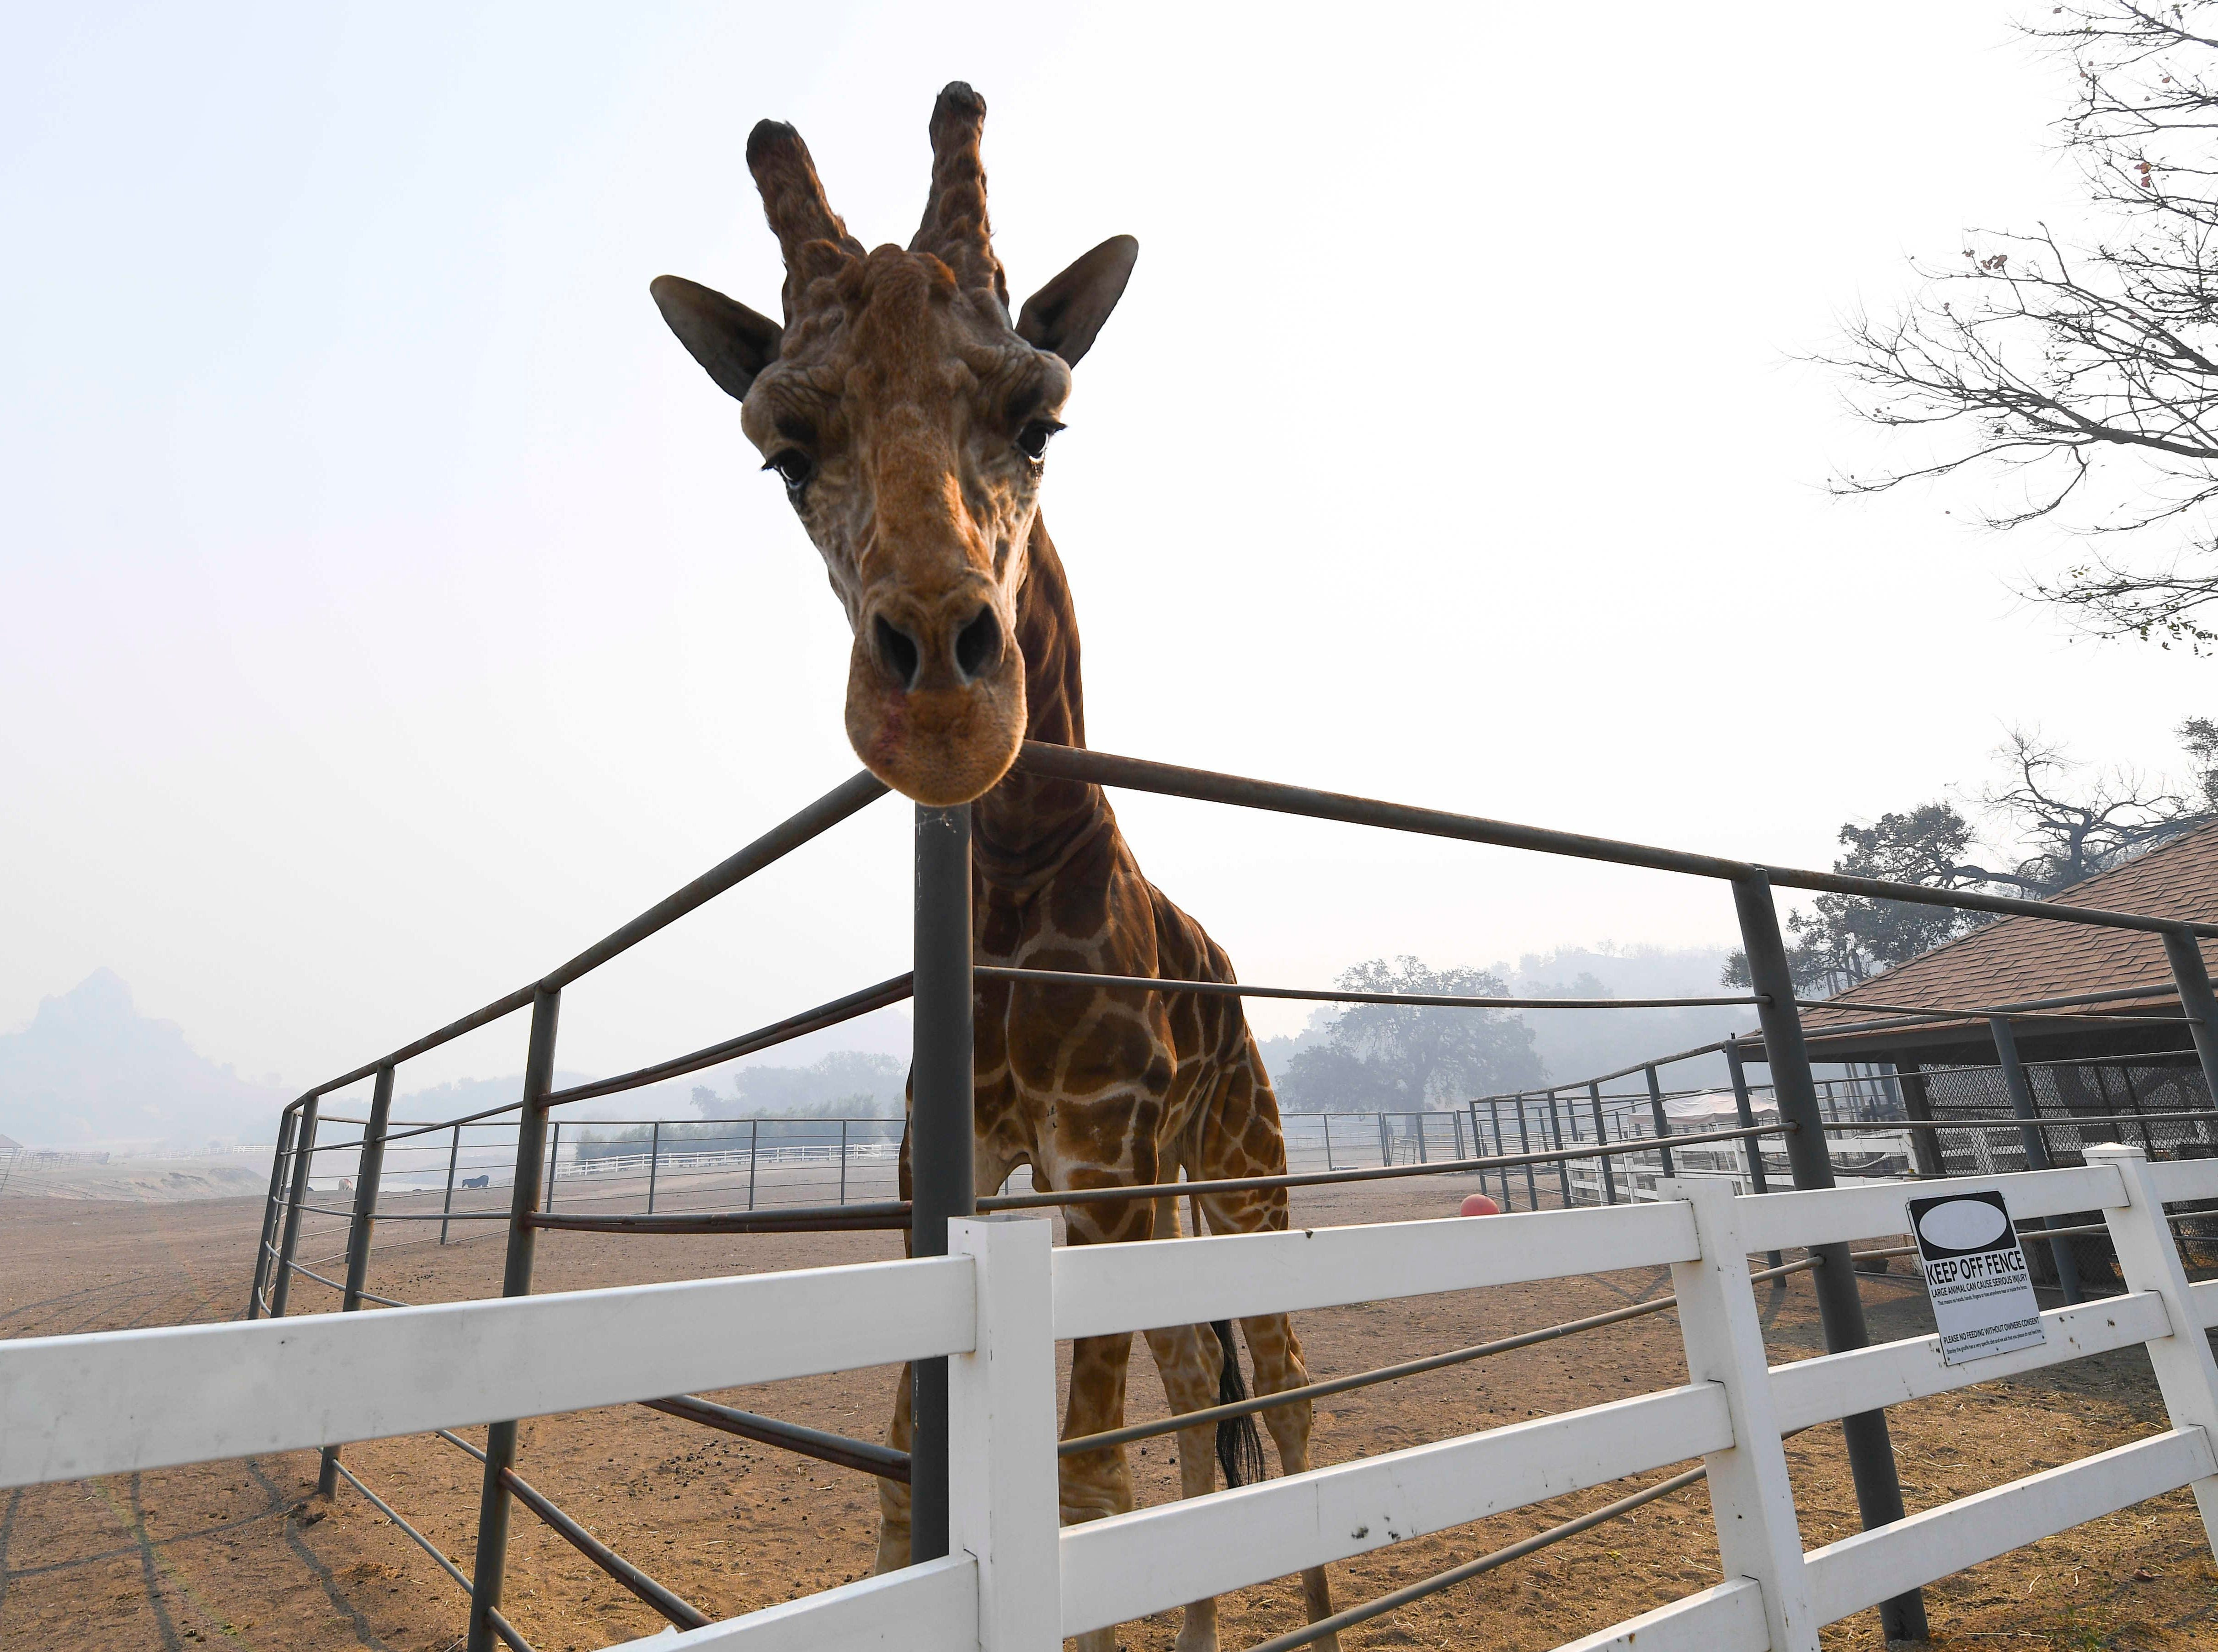 Stanley the Giraffe, one of several exotic animals at Saddlerock Ranch in Malibu, Califronia, is shrouded in smoke in the aftermath of the Woosley Fire on Nov 10, 2018. The animals on the ranch survived, but several buildings on the property we destroyed or damaged by the fire.